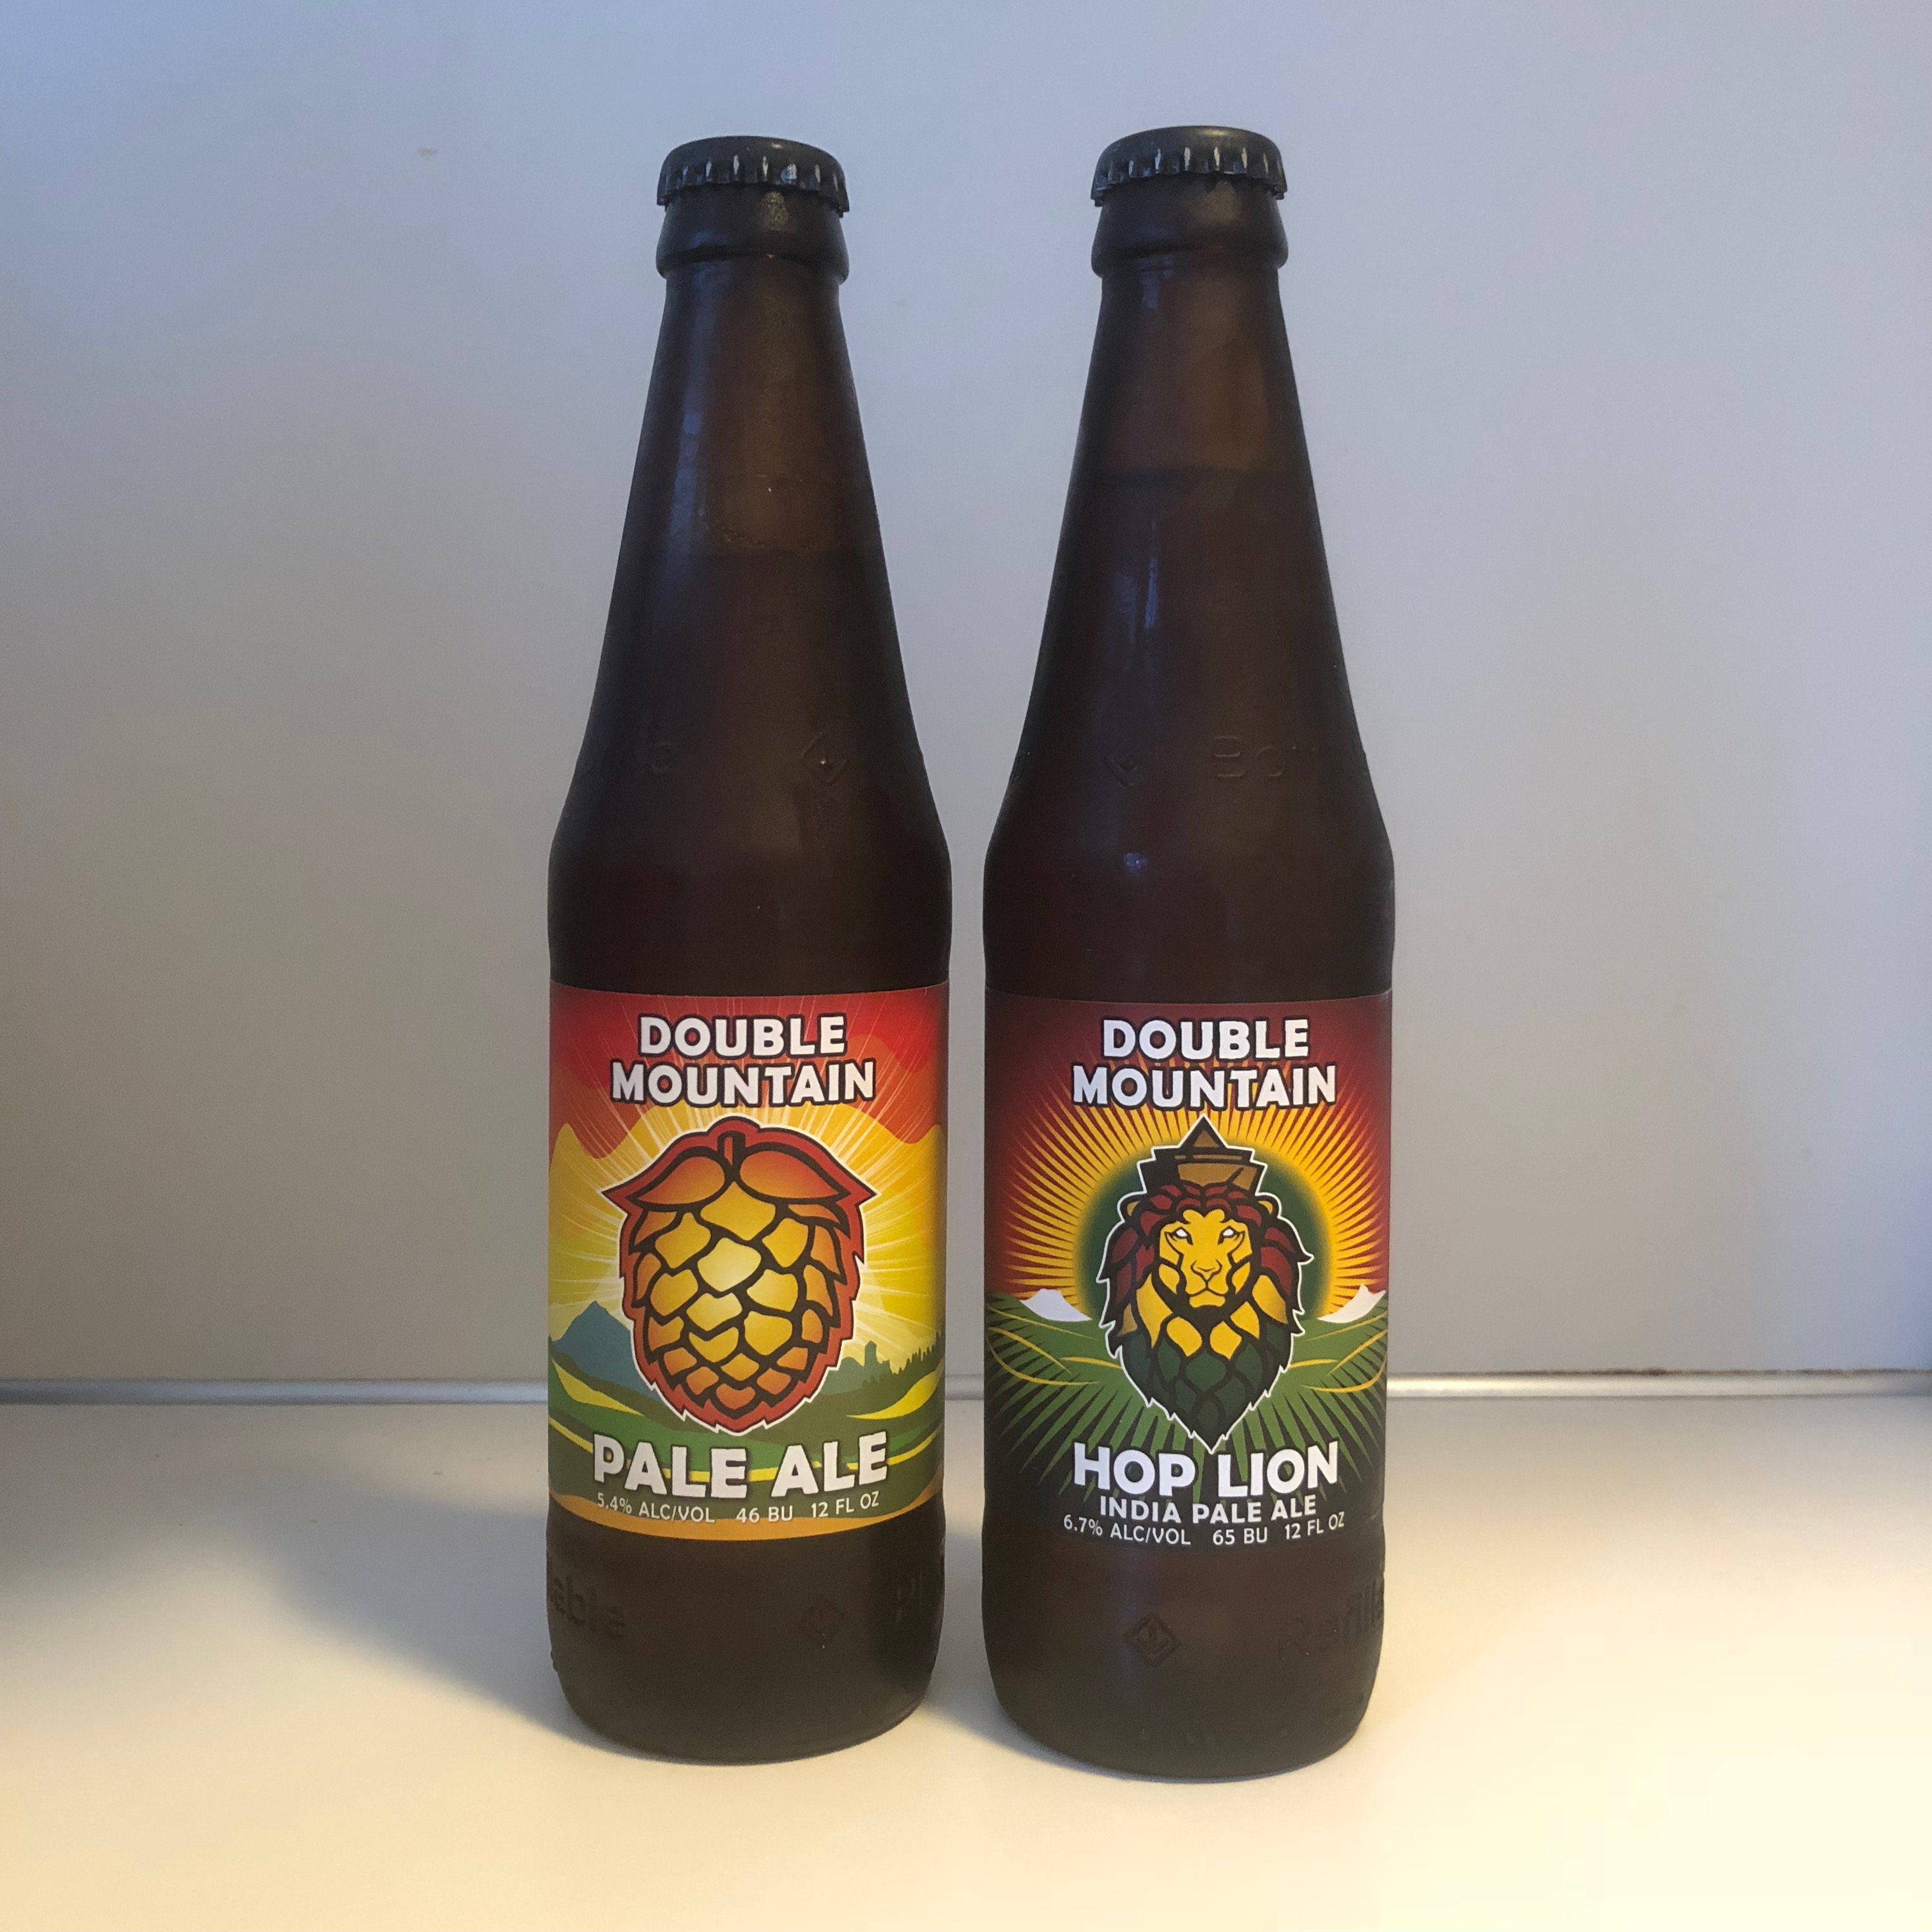 Double Mountain's new 12 ounce refillable bottles of Pale Ale and Hop Lion IPA.